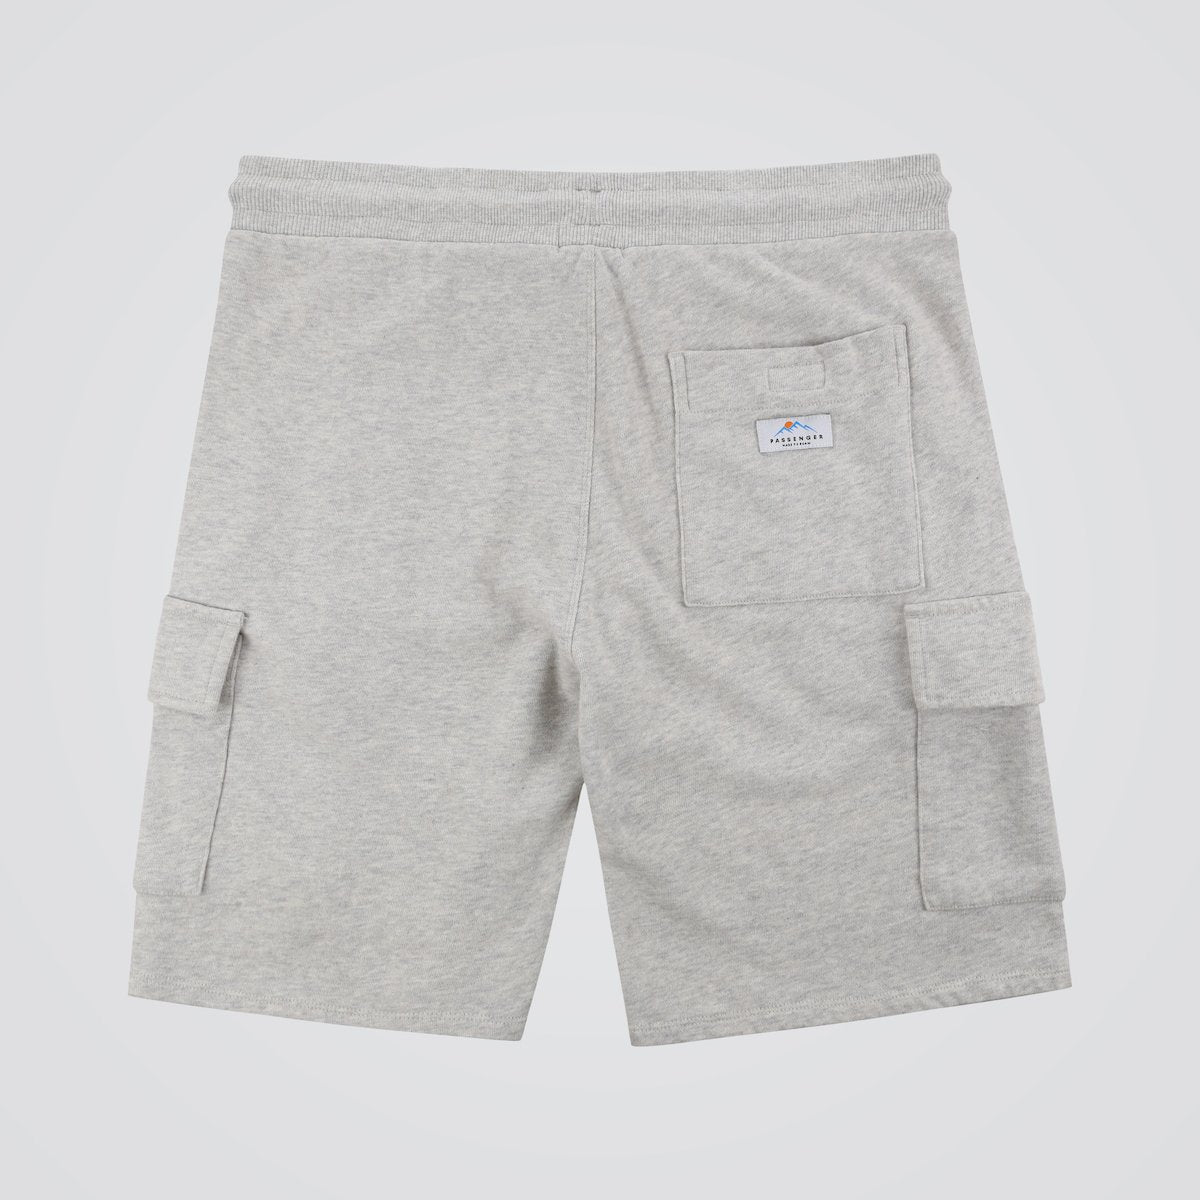 Tourer Jog Shorts - Grey Marl image 8